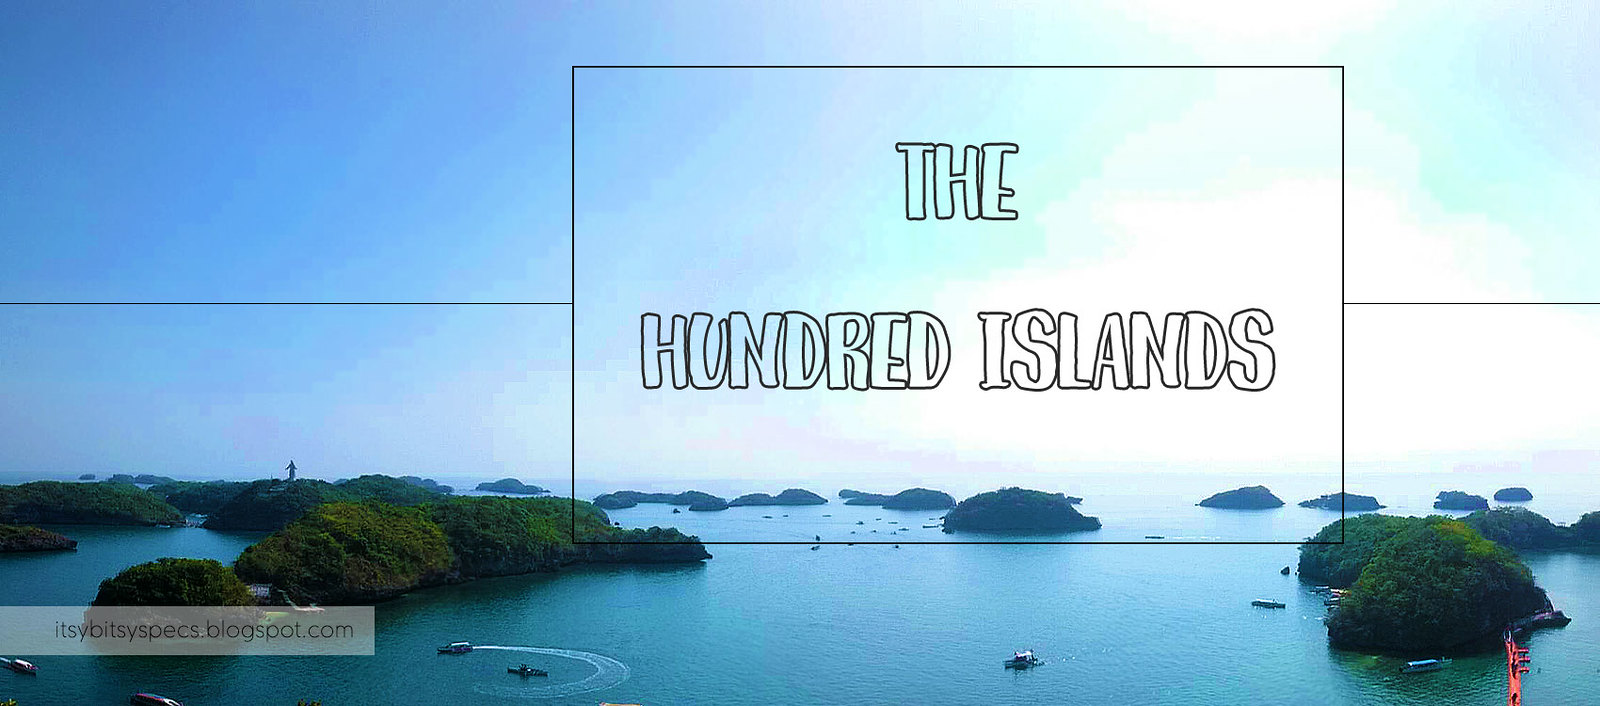 The Hundred Islands 2017